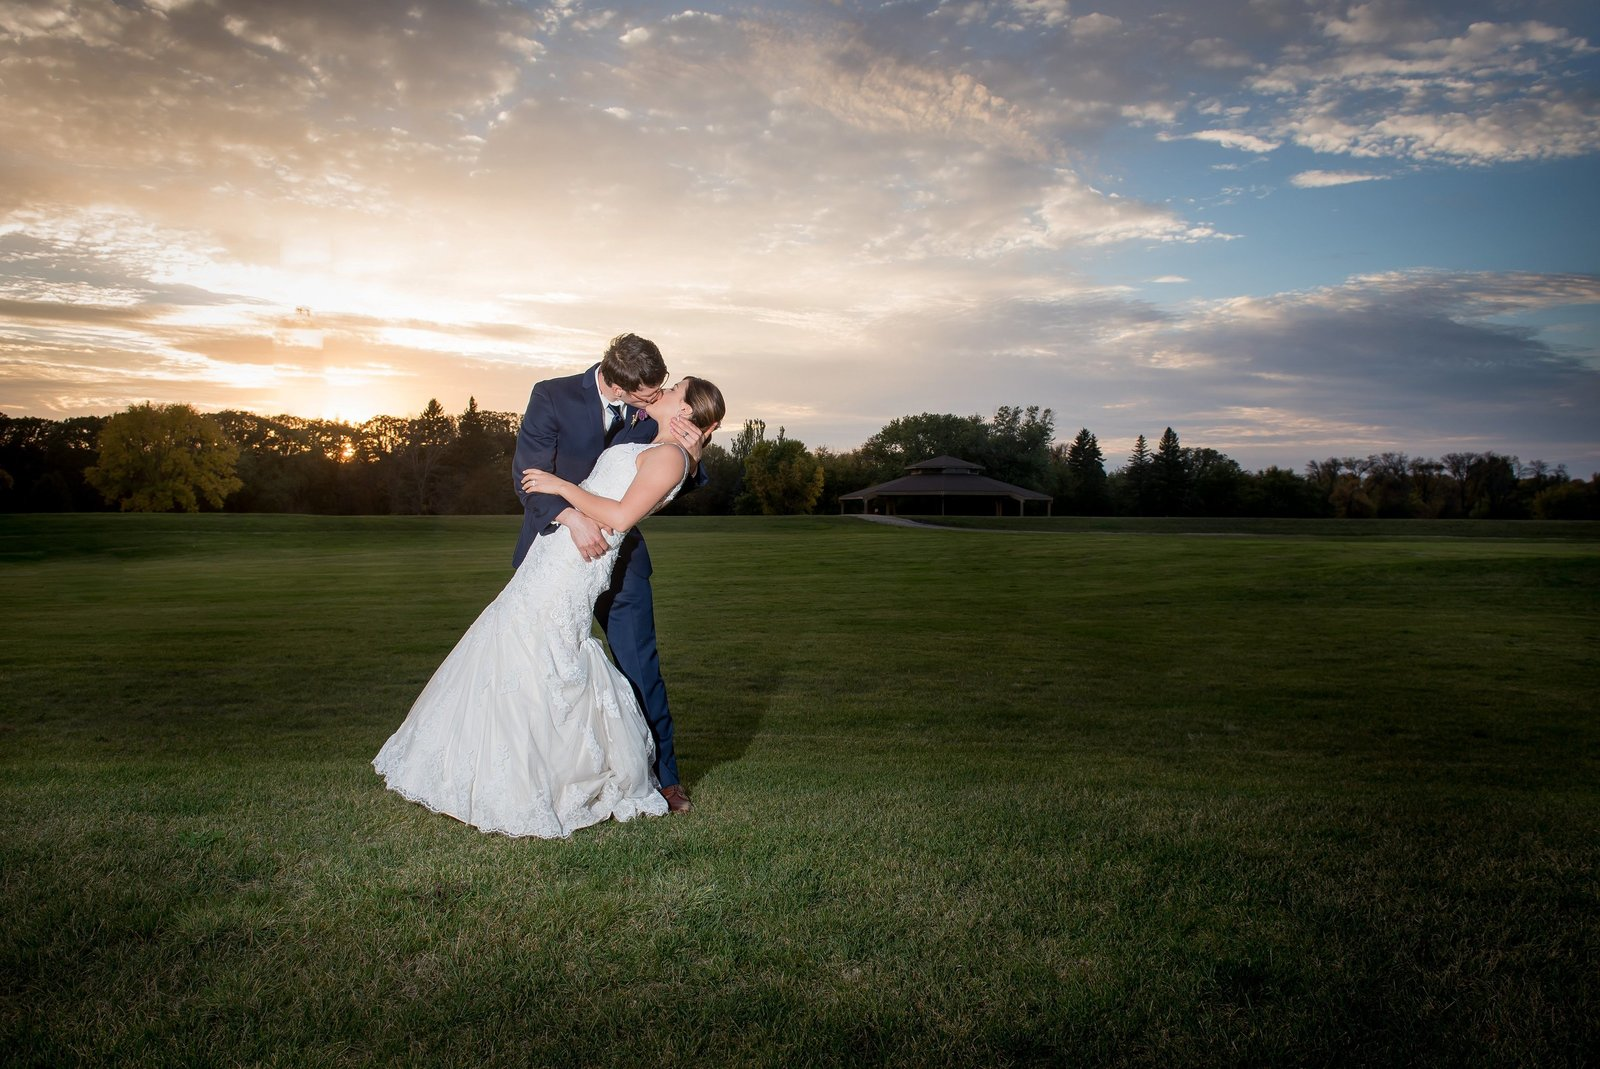 Off Camera Flash photography captured this sunset wedding photos by Kris Kandel in Fargo